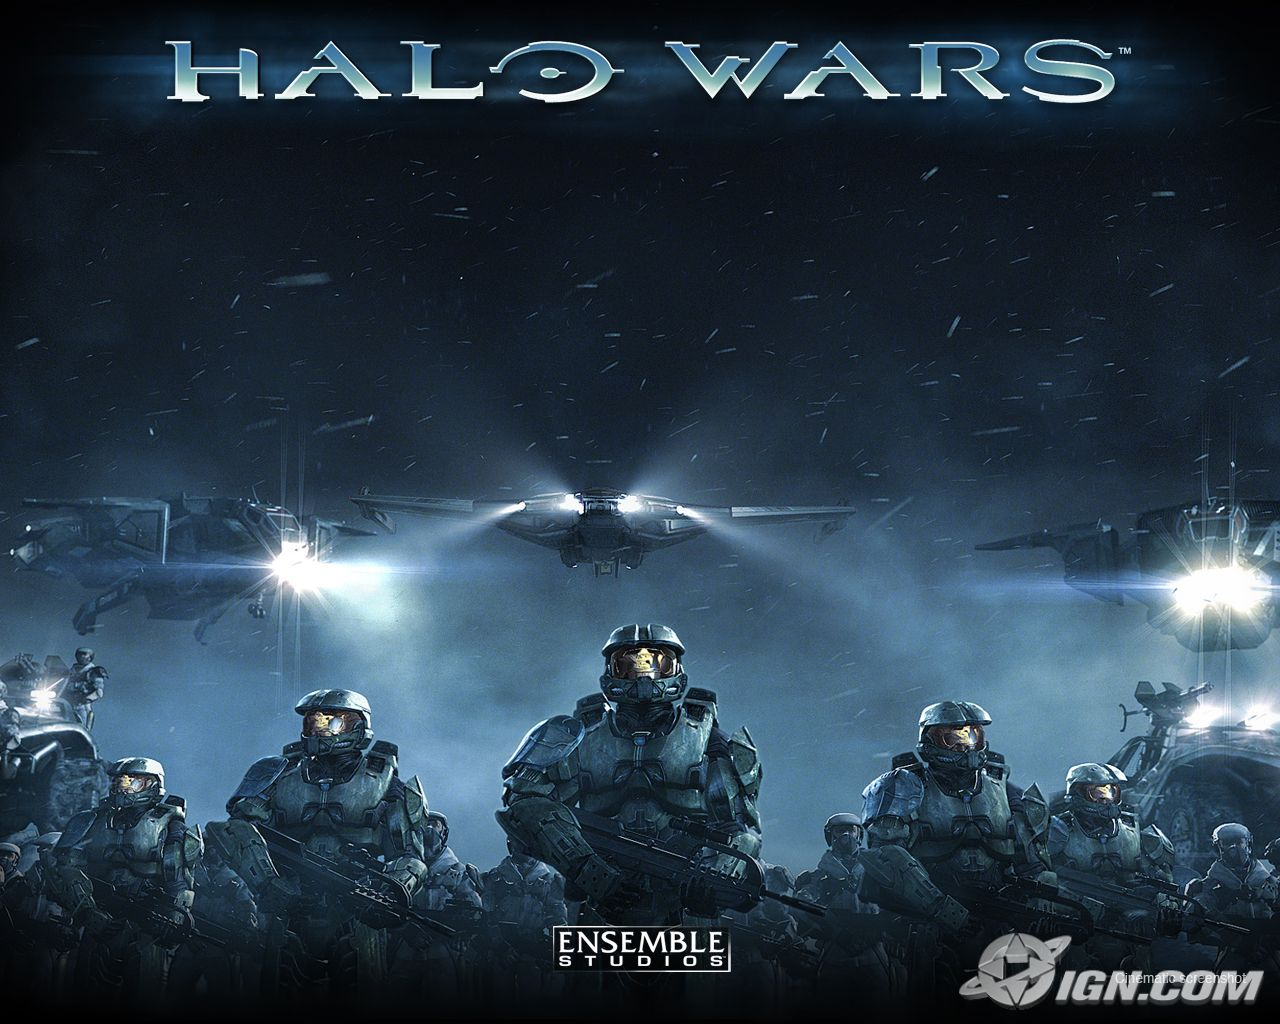 Halo Wars [1 Link] [FS] [Crackeado] [578.MB]